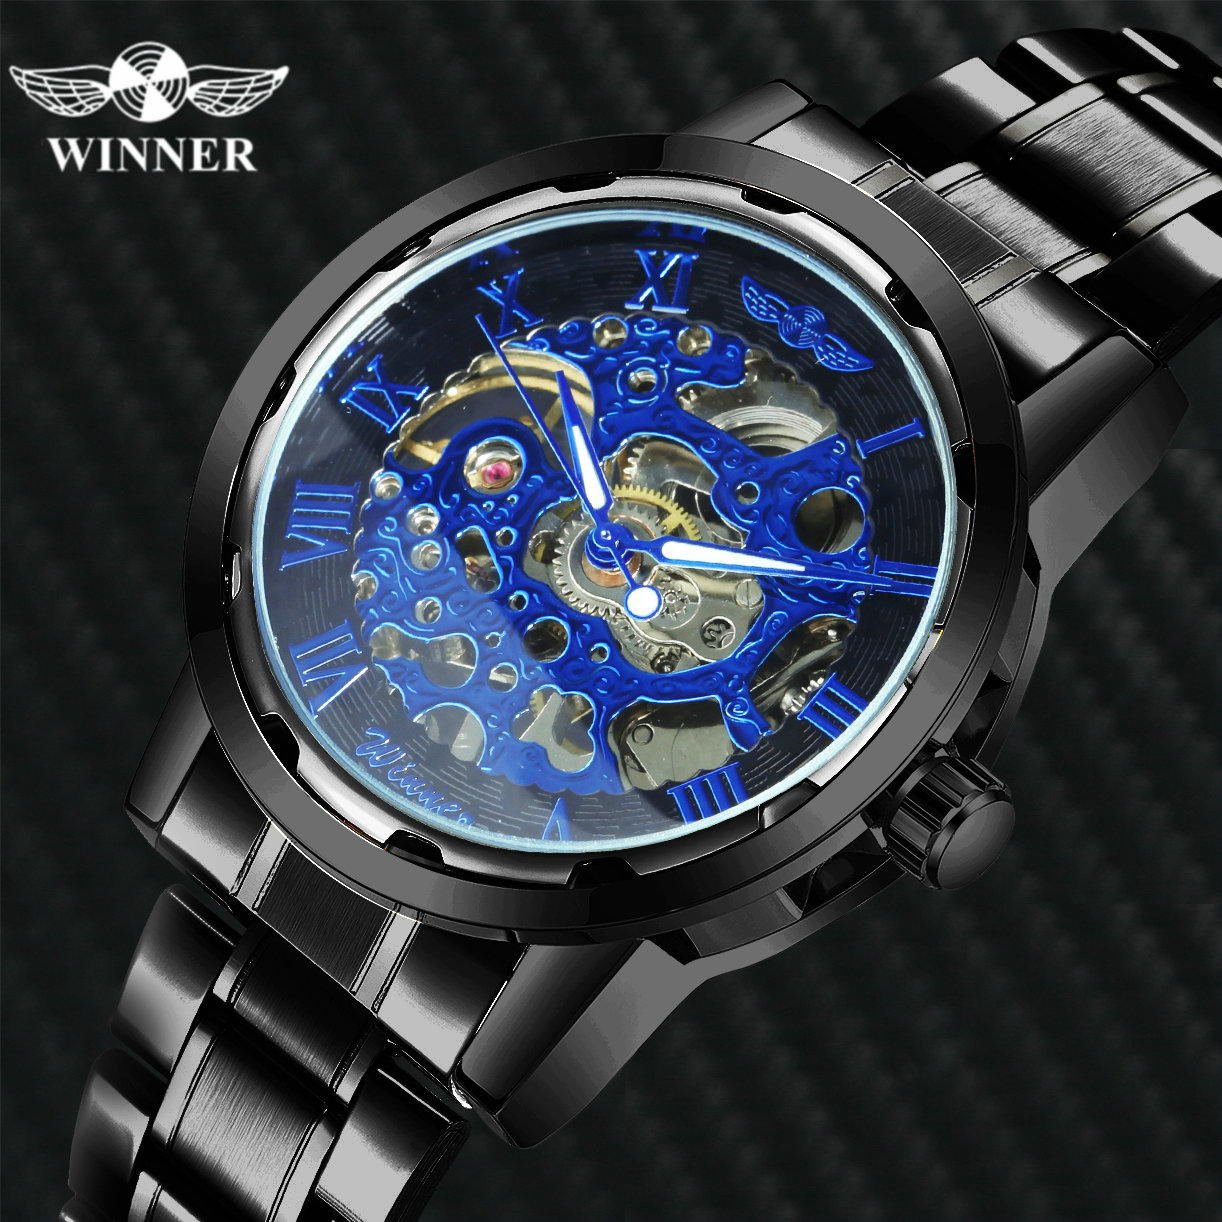 WINNER Mechanical Watch For Men Fashion Skeleton Watches Stainless Steel Strap Luminous Hands Male Wristwatch Dress Reloj Hombre